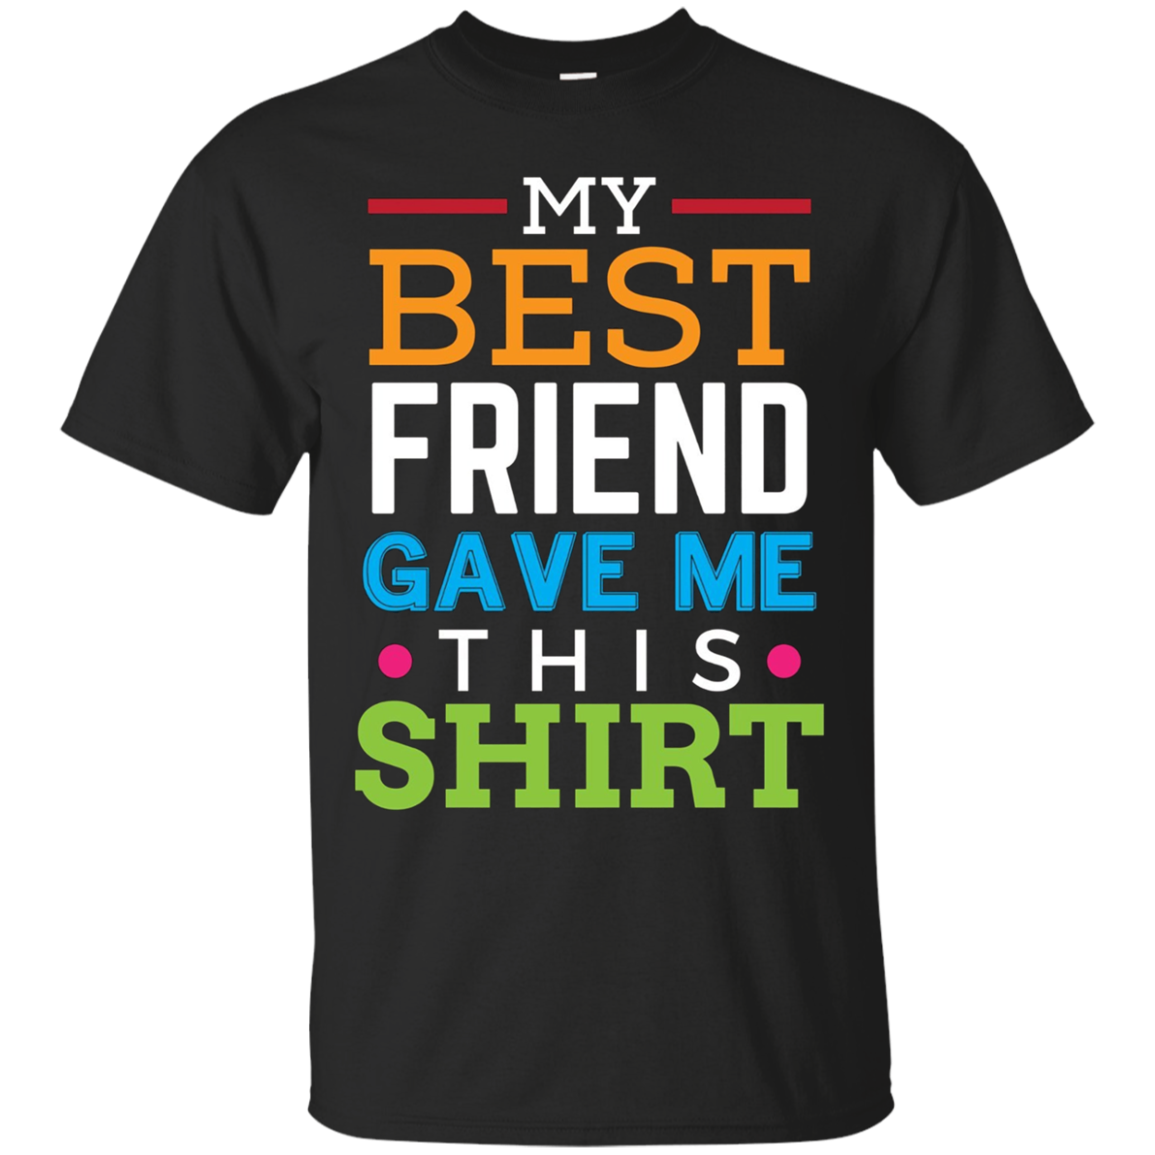 My Best Friend Gave Me This Shirt Tee BFF